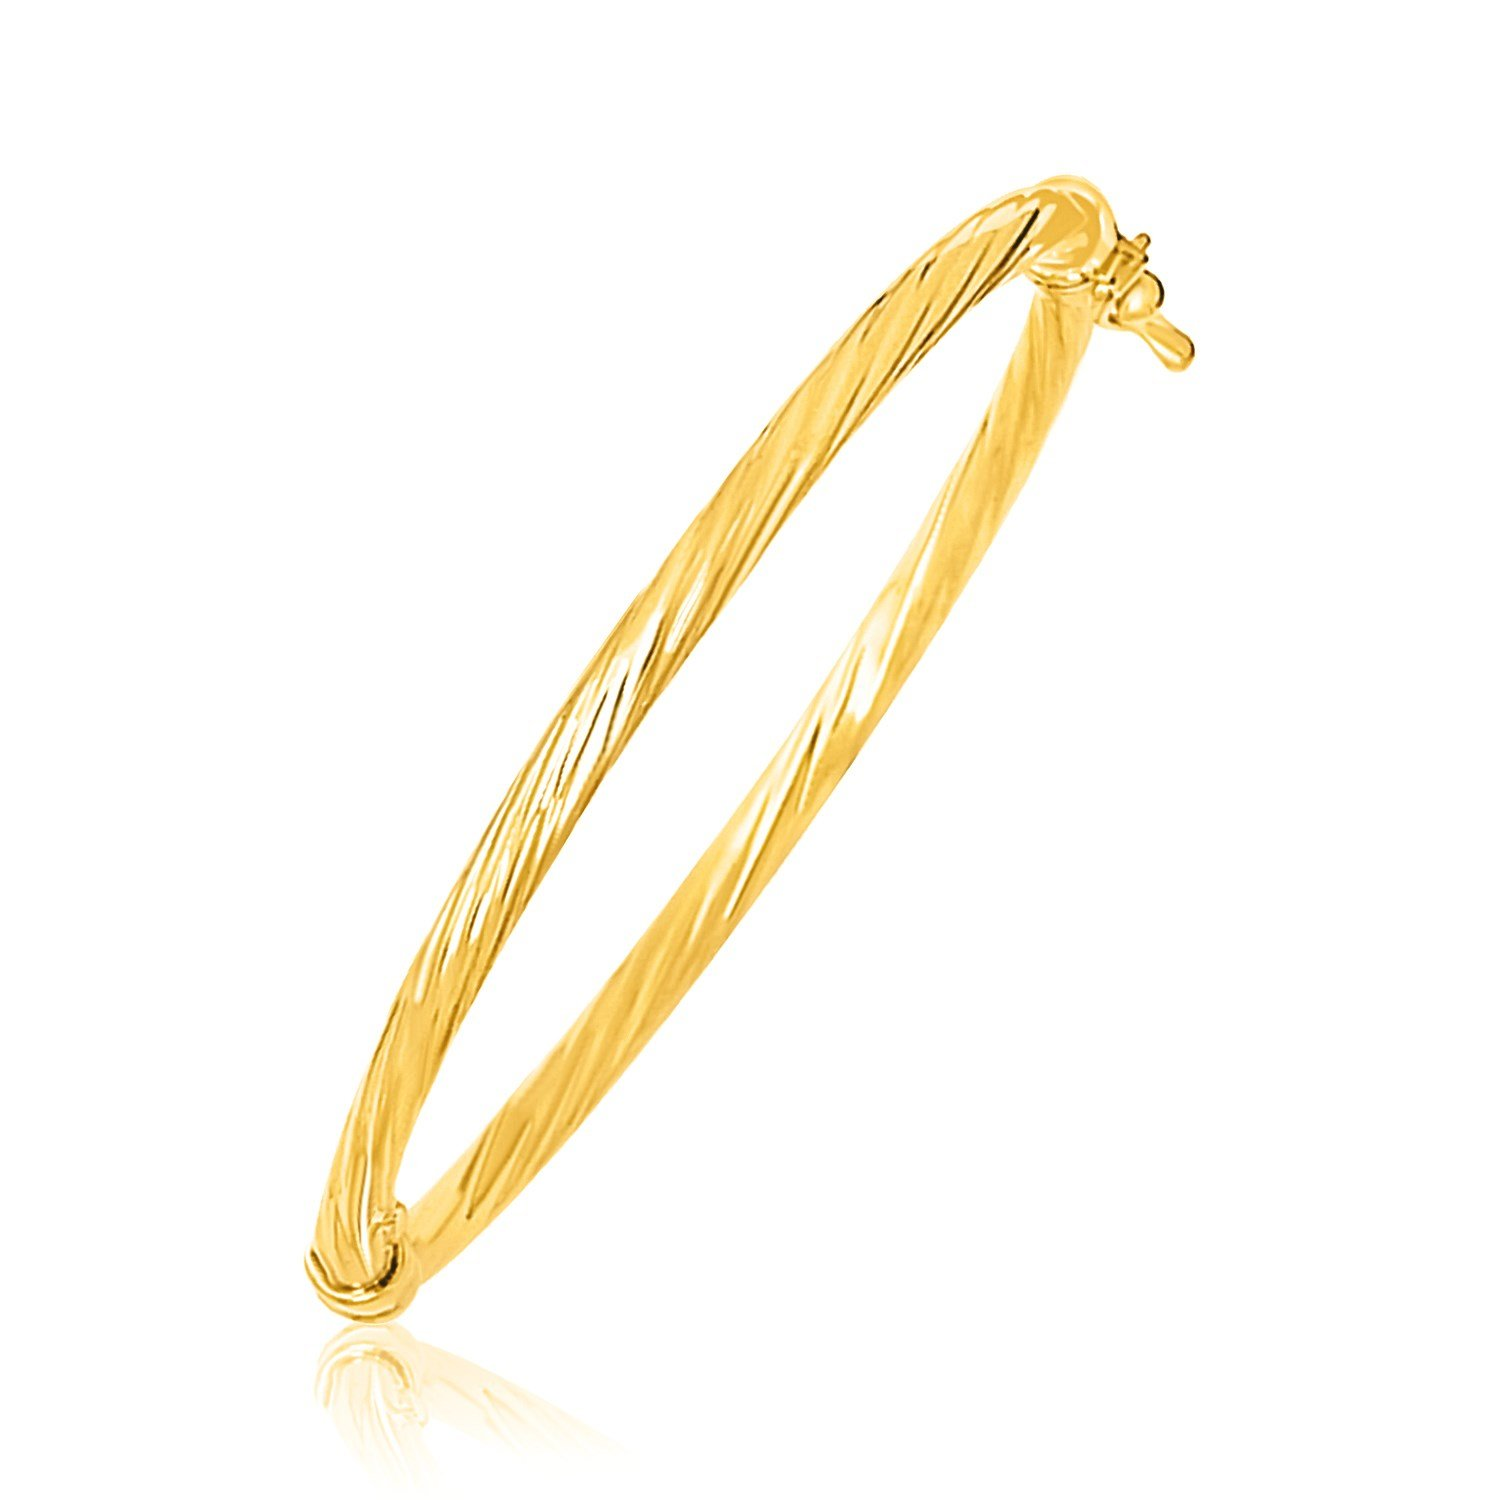 BunnyBerry Gifts 14K Yellow Gold Childrens Bangle with Spiral Motif Style